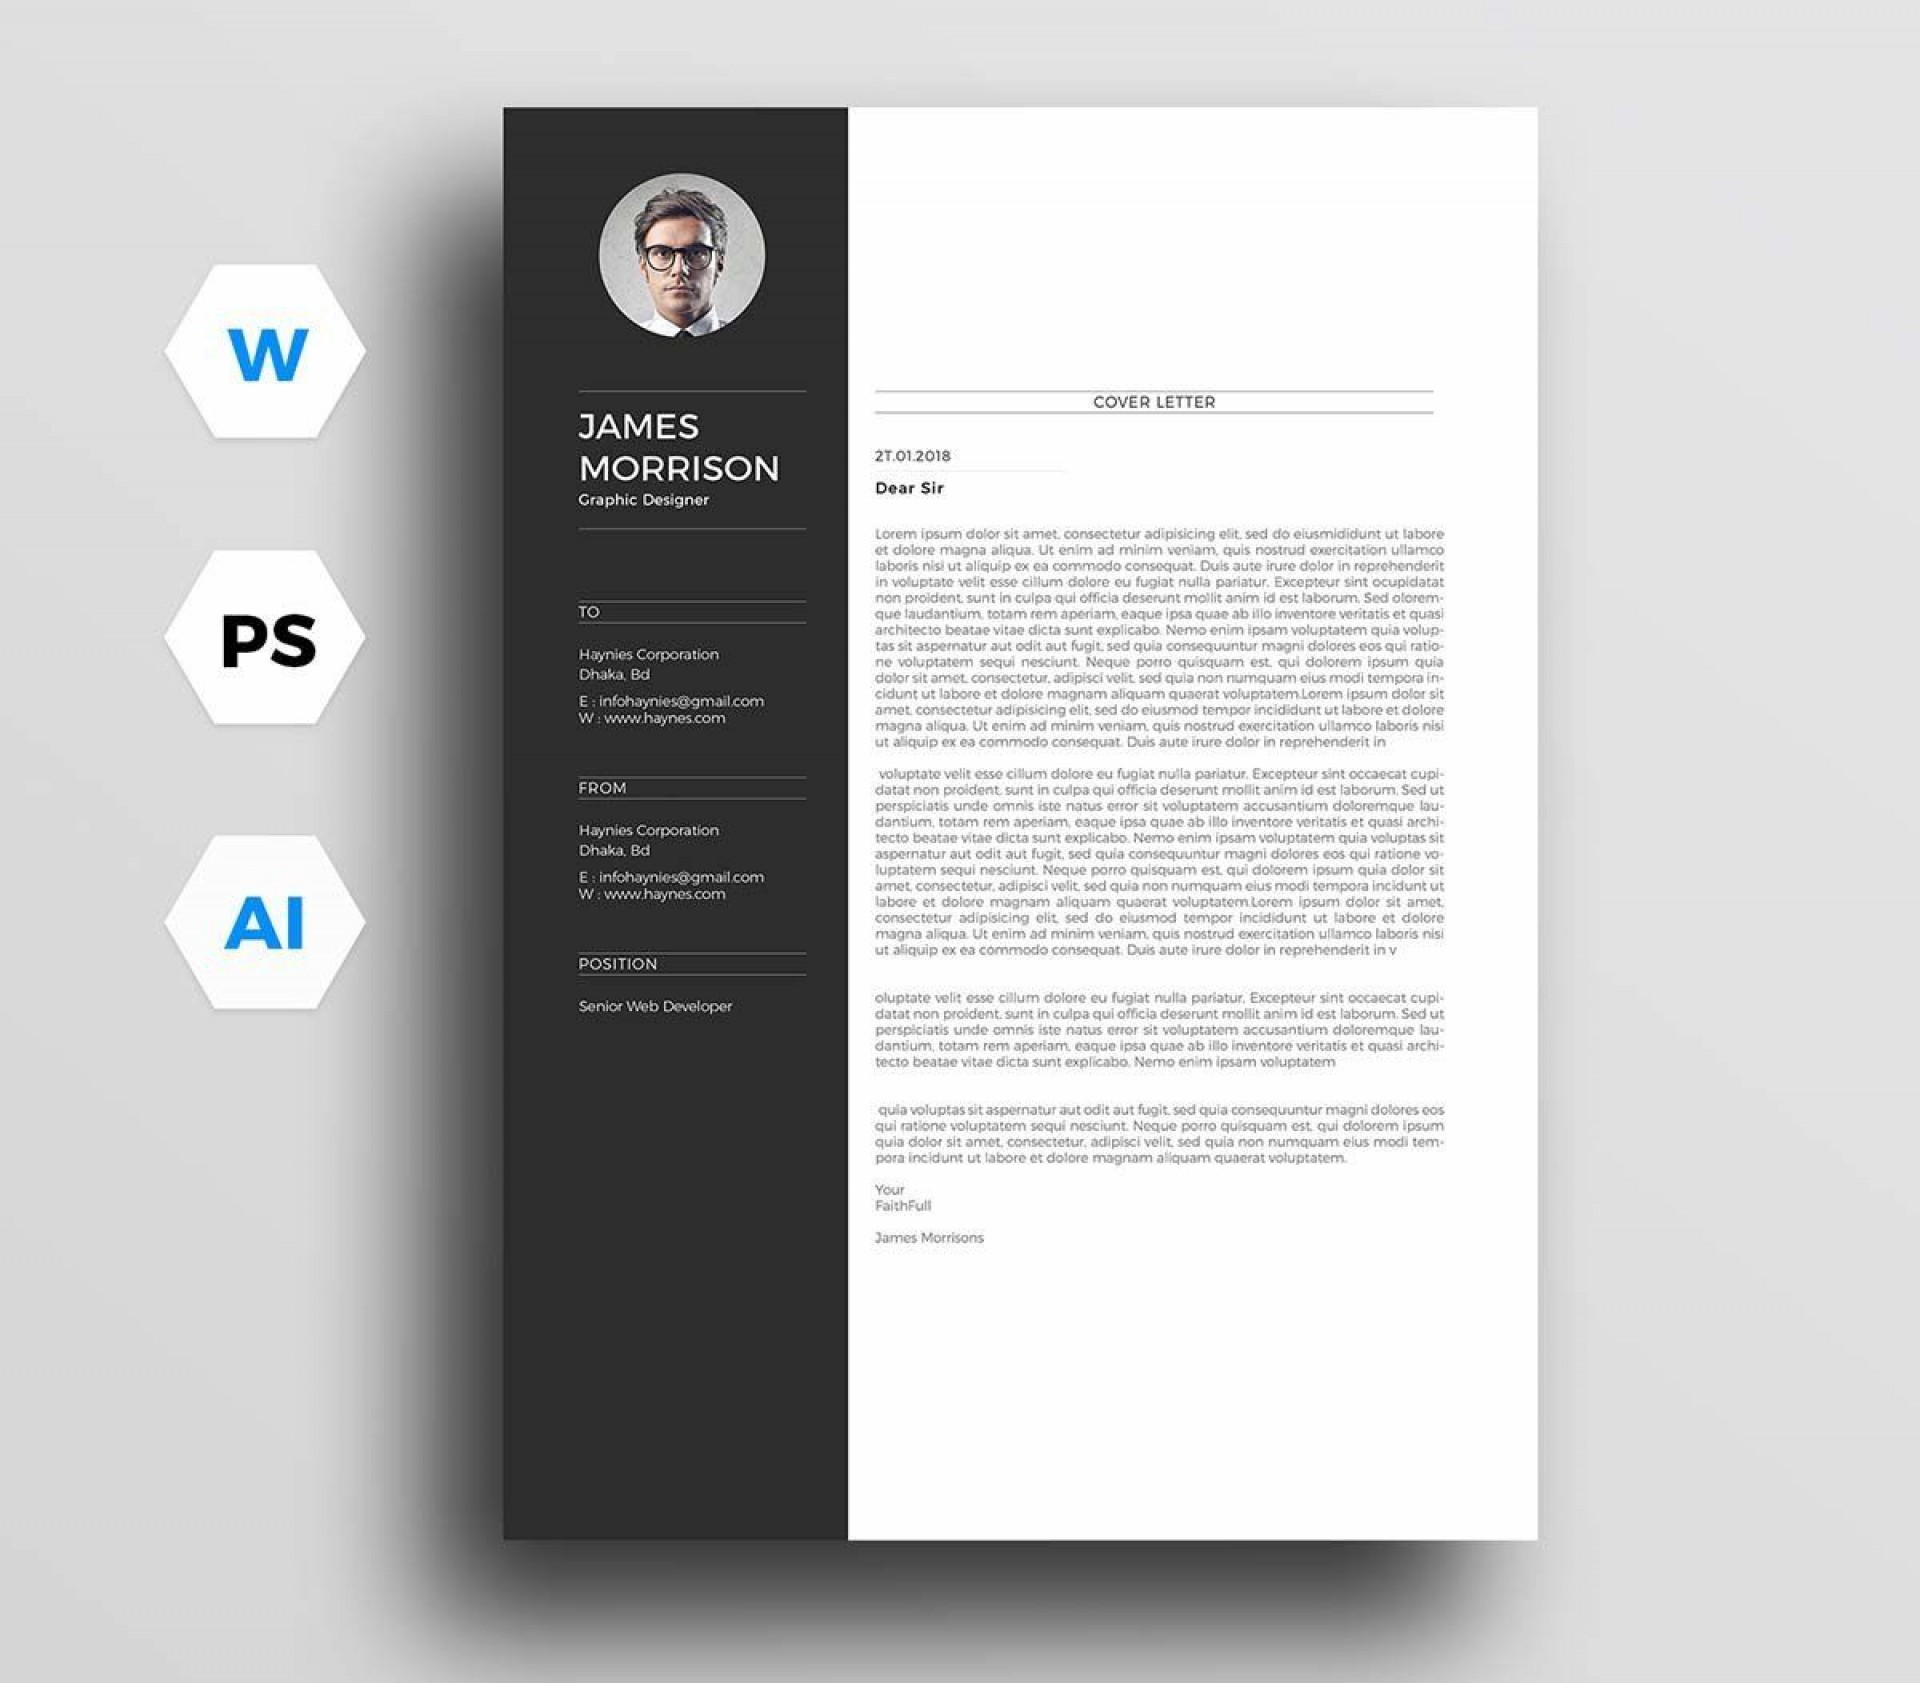 001 Unbelievable Microsoft Cover Letter Template Download High Resolution  Word Free1920